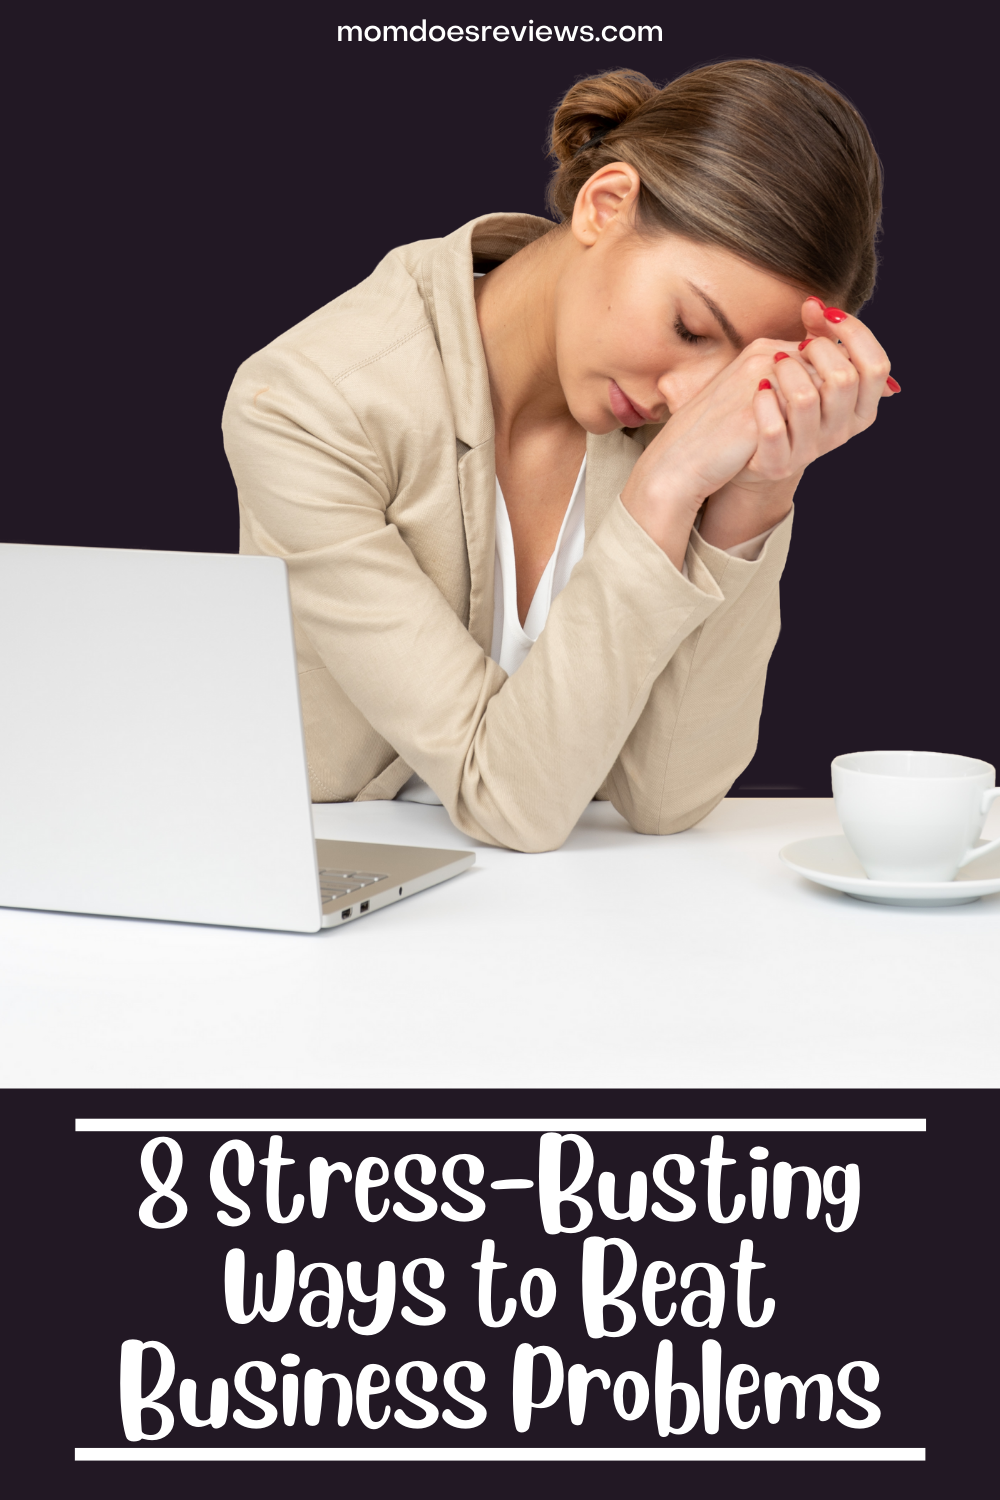 8 Stress-Busting Ways to Beat Business Problems